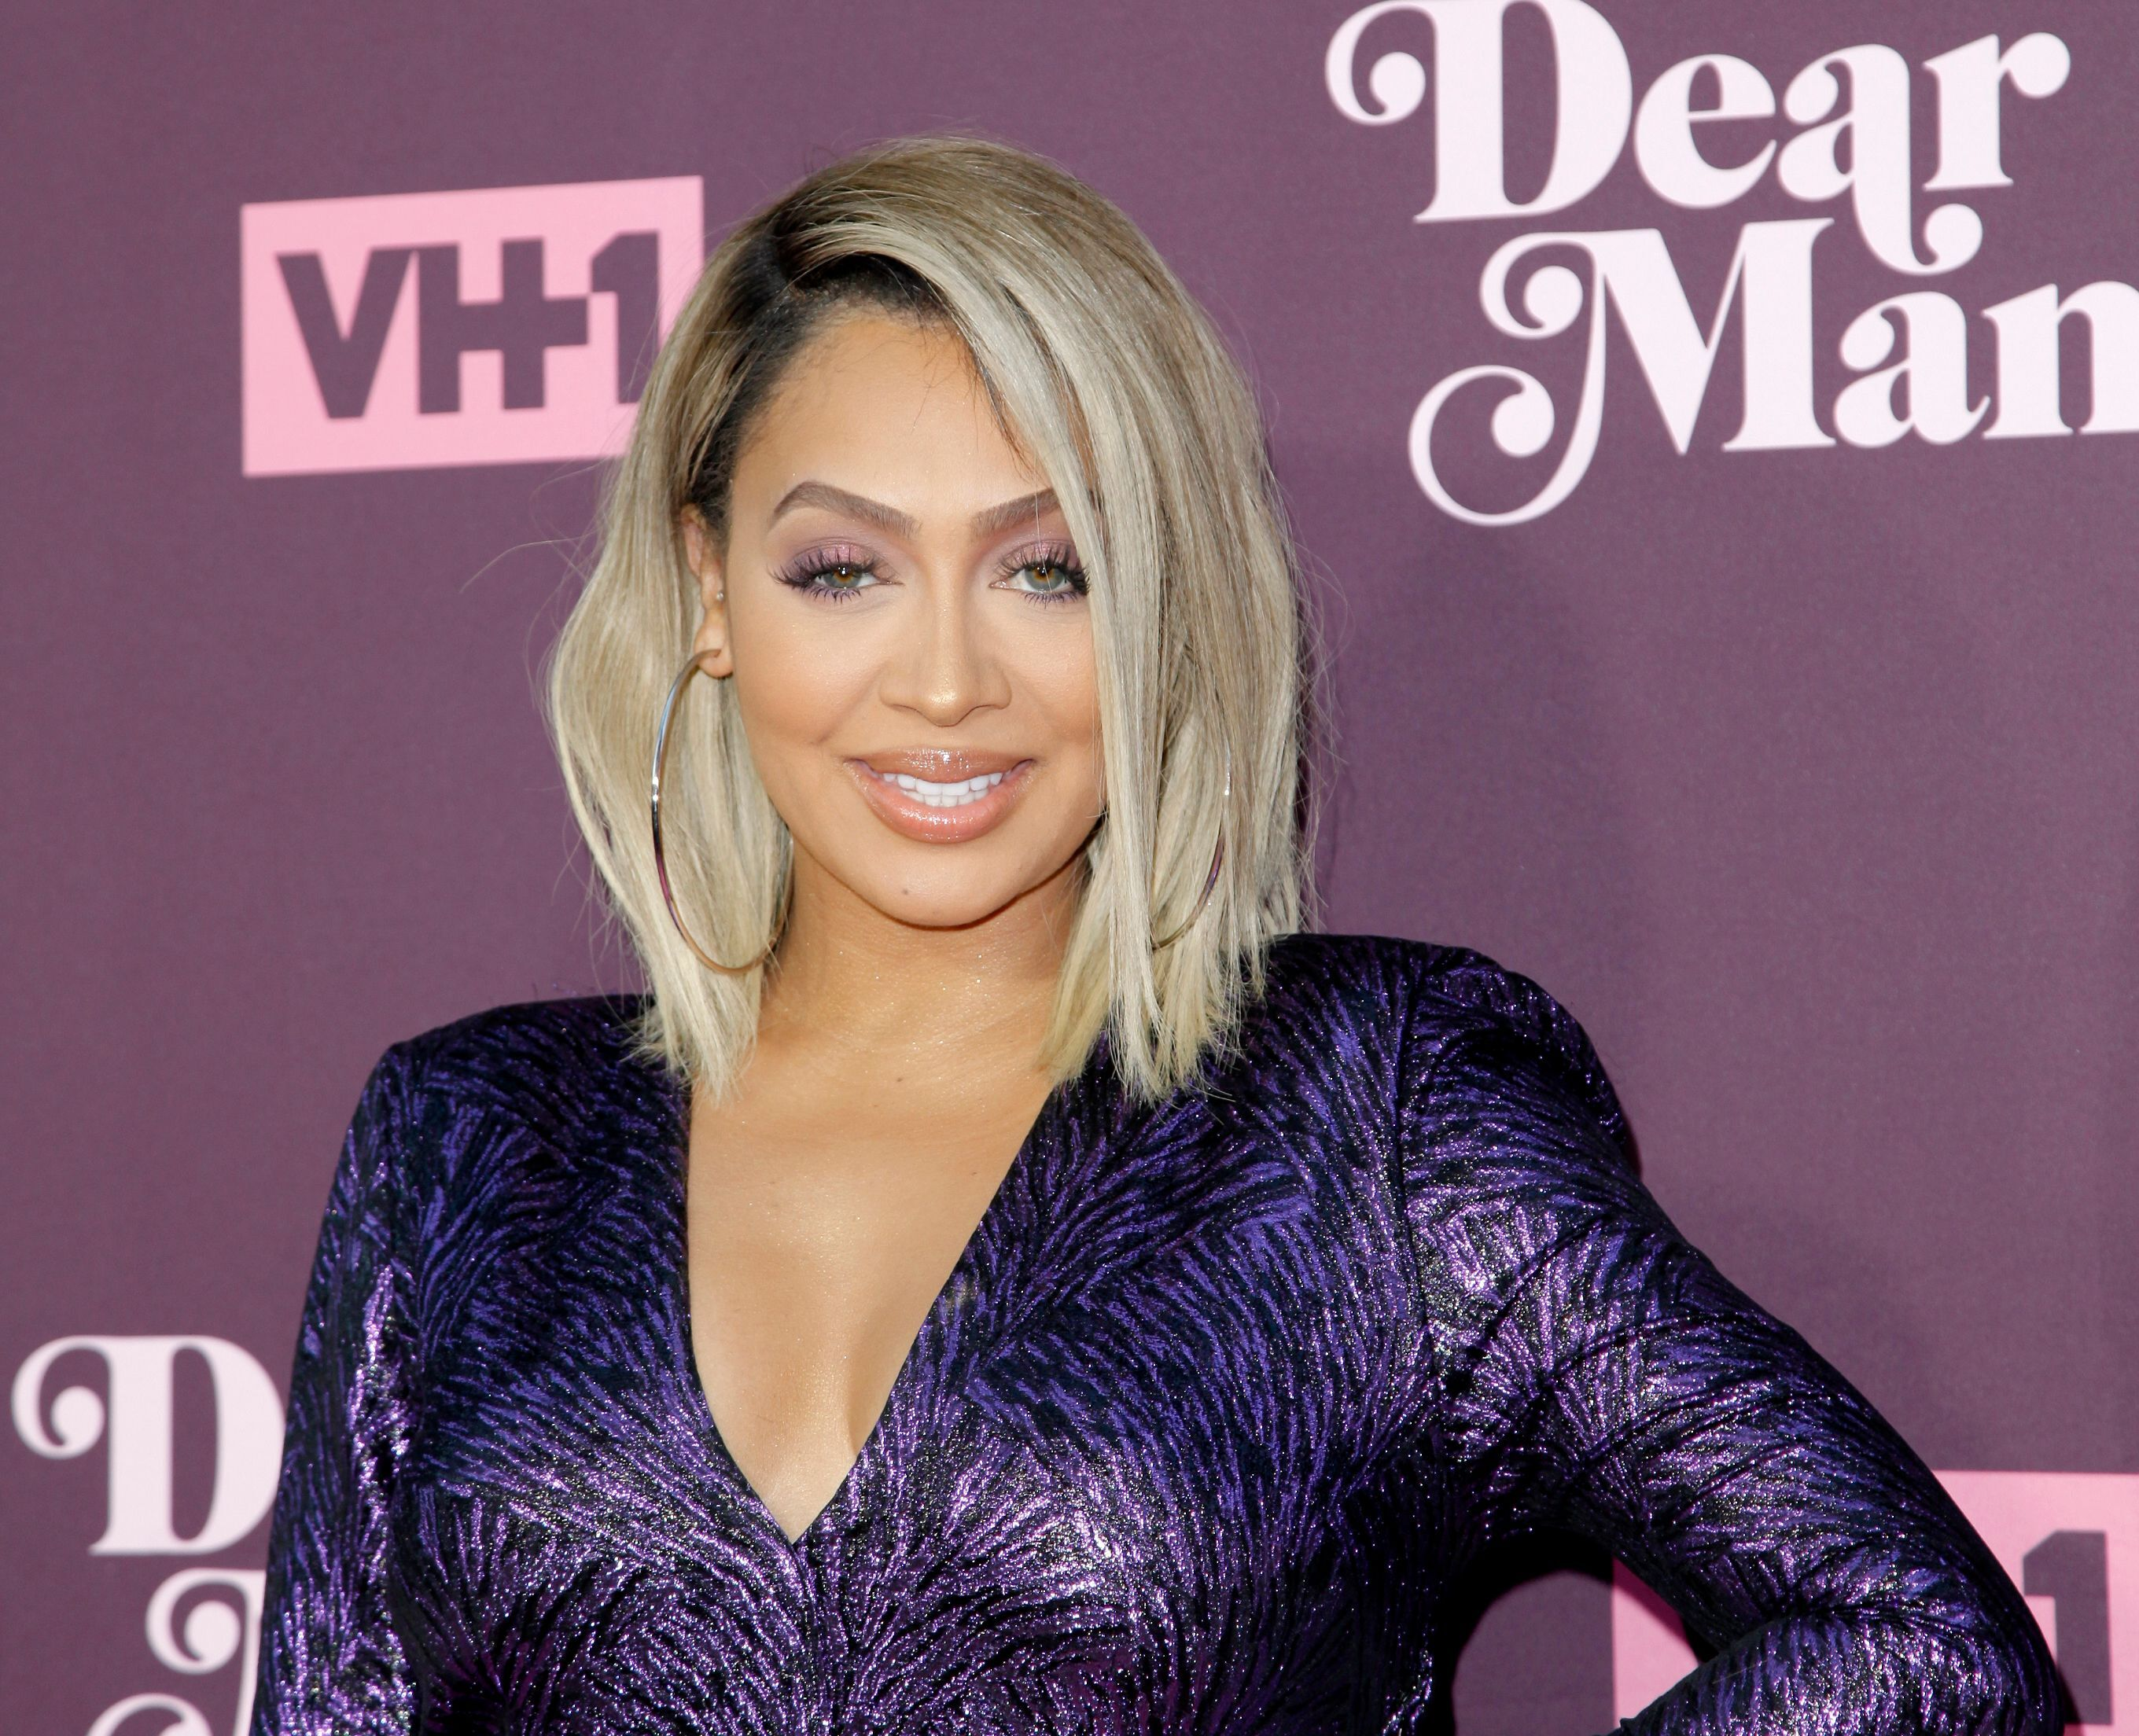 """La La Anthony at VH1's """"Dear Mama: A Love Letter To Moms"""" screening at The Theatre at Ace Hotel on May 3, 2018.   Photo: Getty Images"""